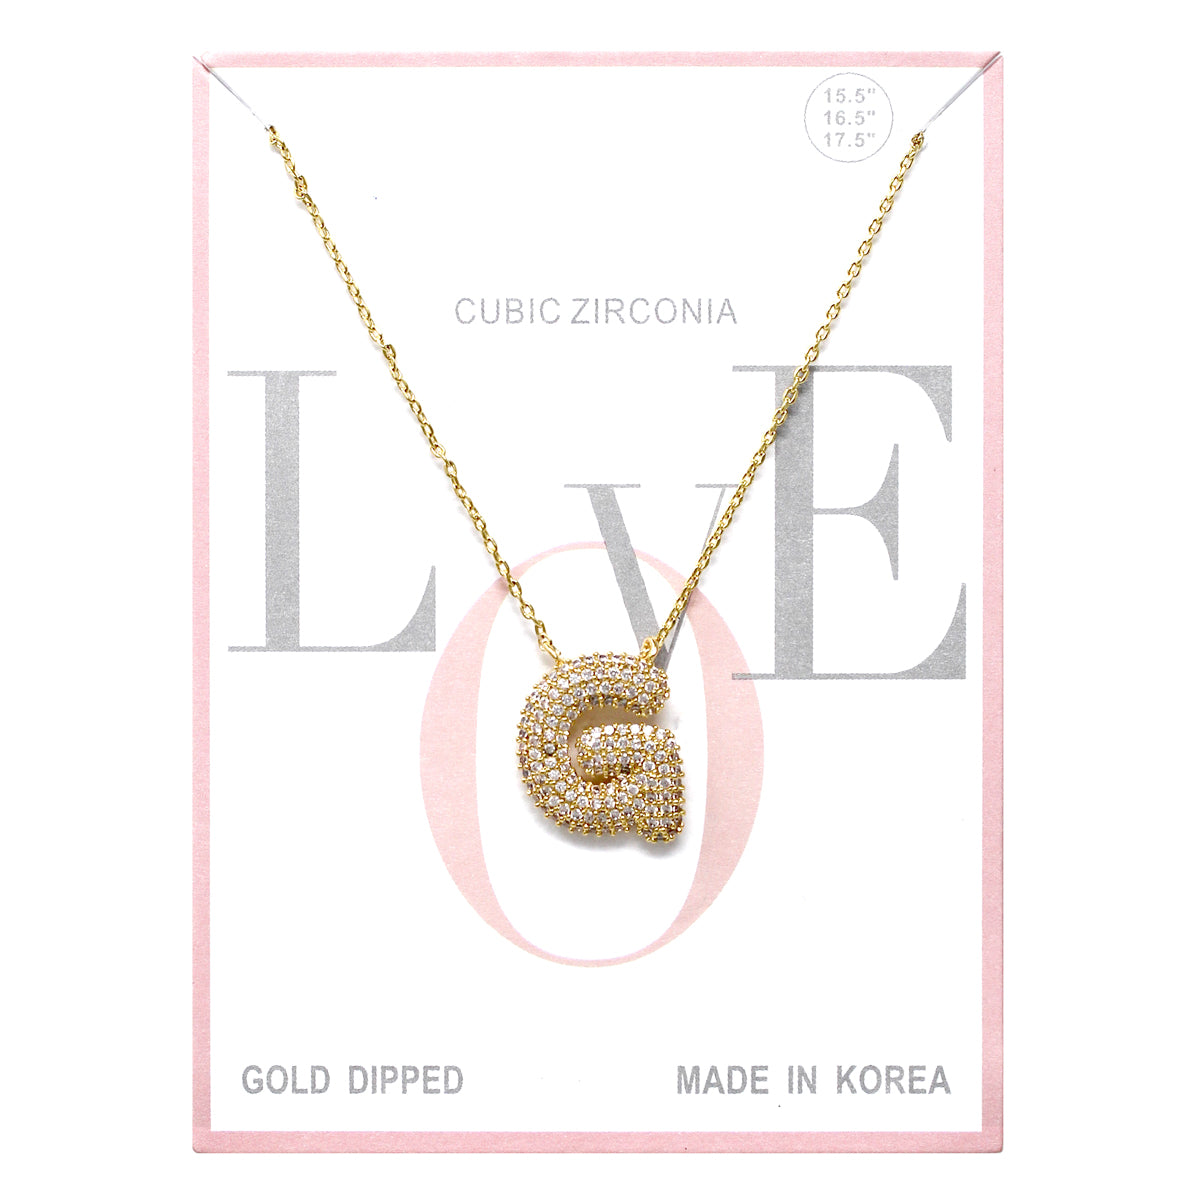 G Cubic Zirconia Pave Initial Simple Chain Necklace